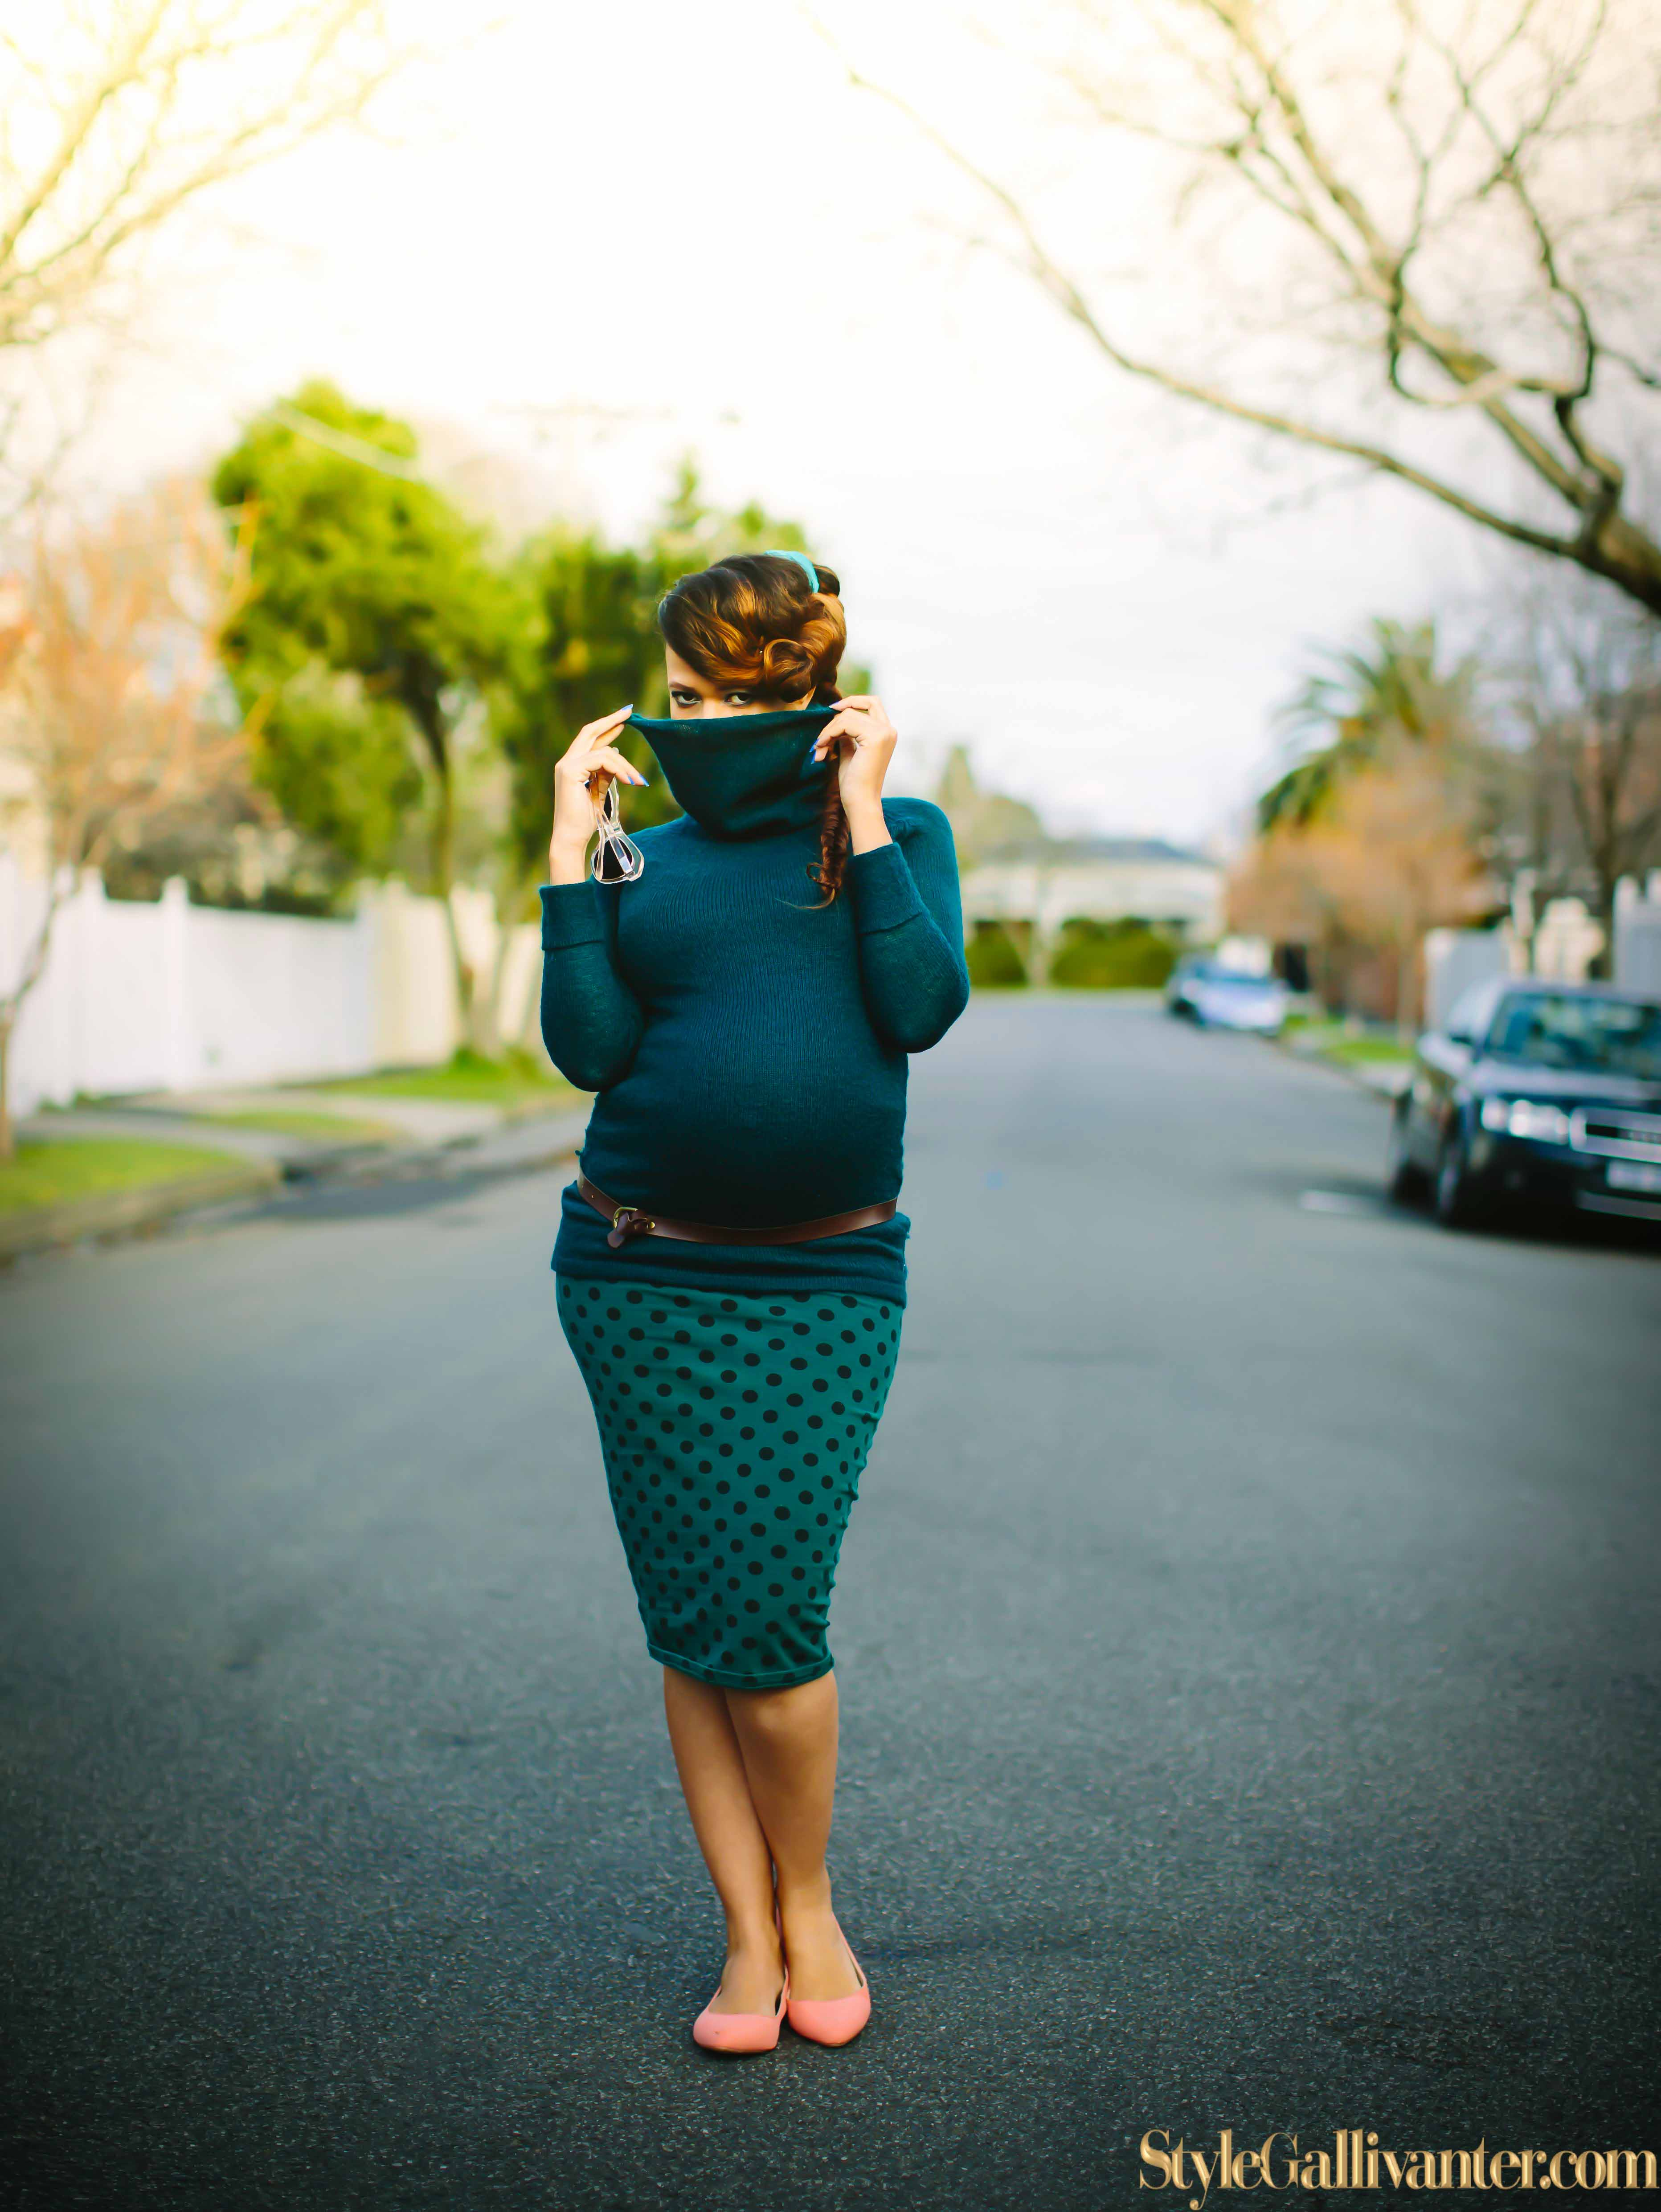 stylegallivanter.com_melbourne-fashion-bloggers_africa's-top-bloggers_best-new-fashion-blogs-australia-2015_teal-outfit_top-new-fashion-influencers-melbourne-34